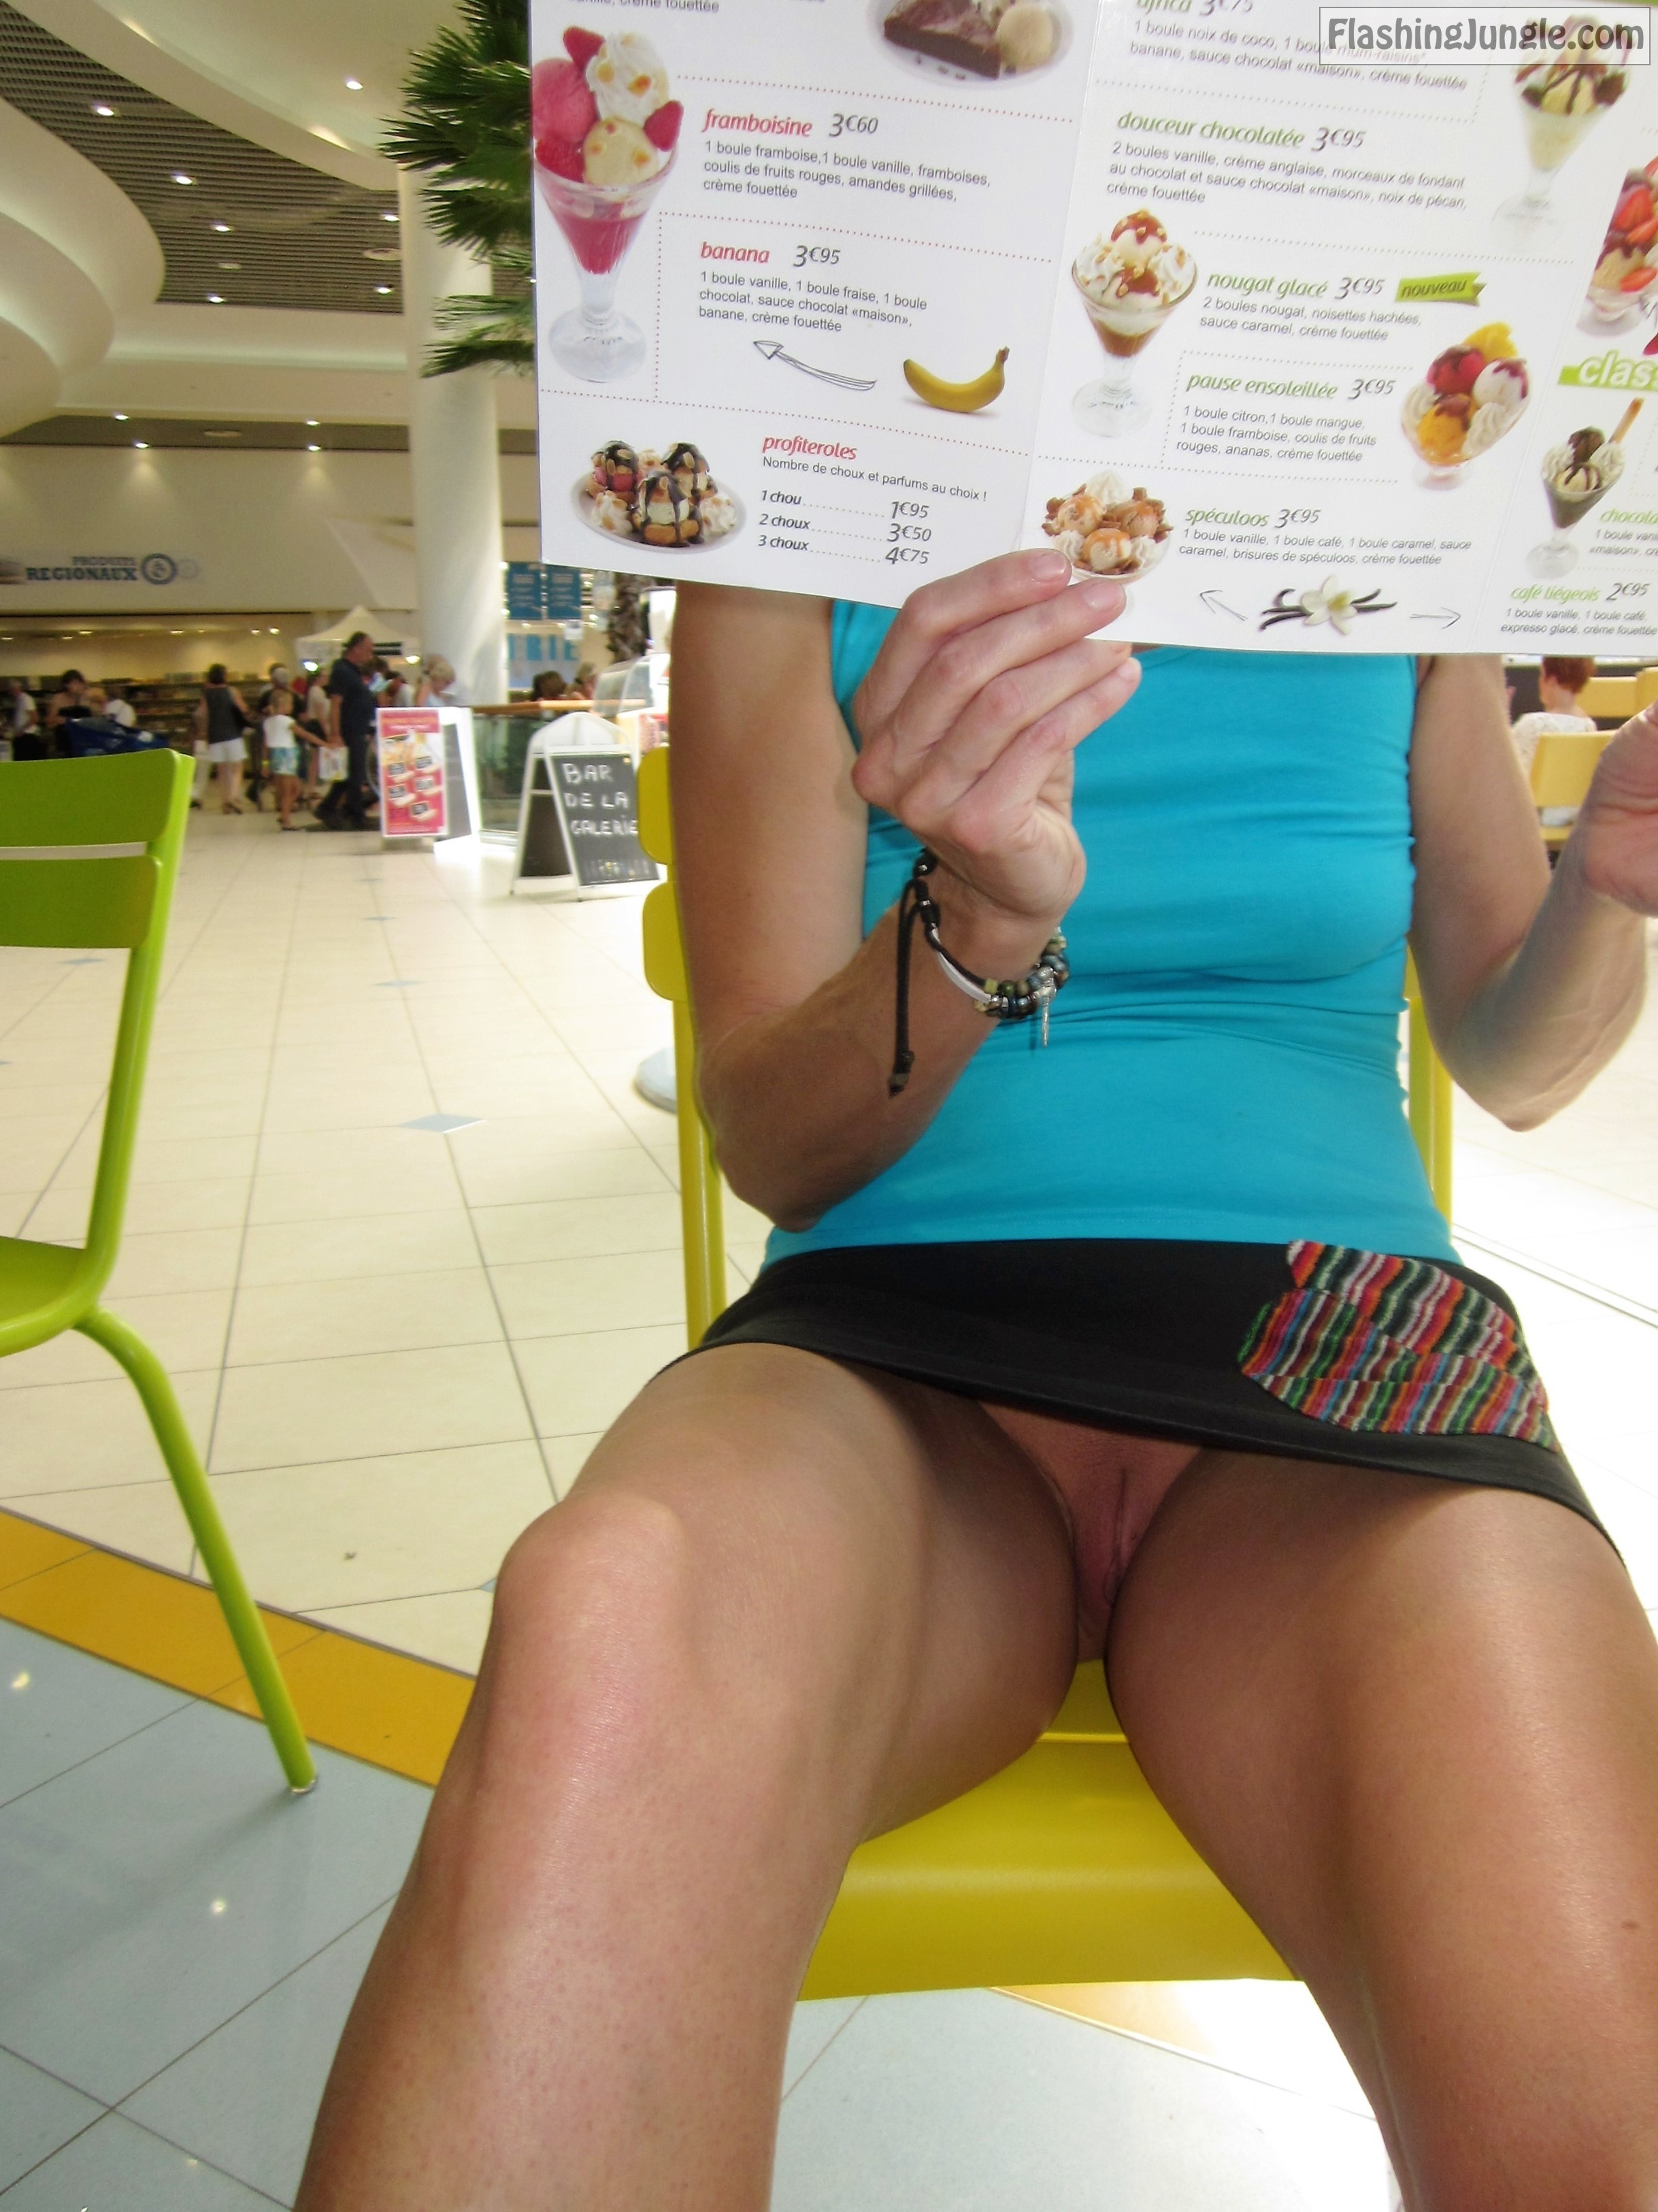 Flashing at the mall - pantyless upskirt